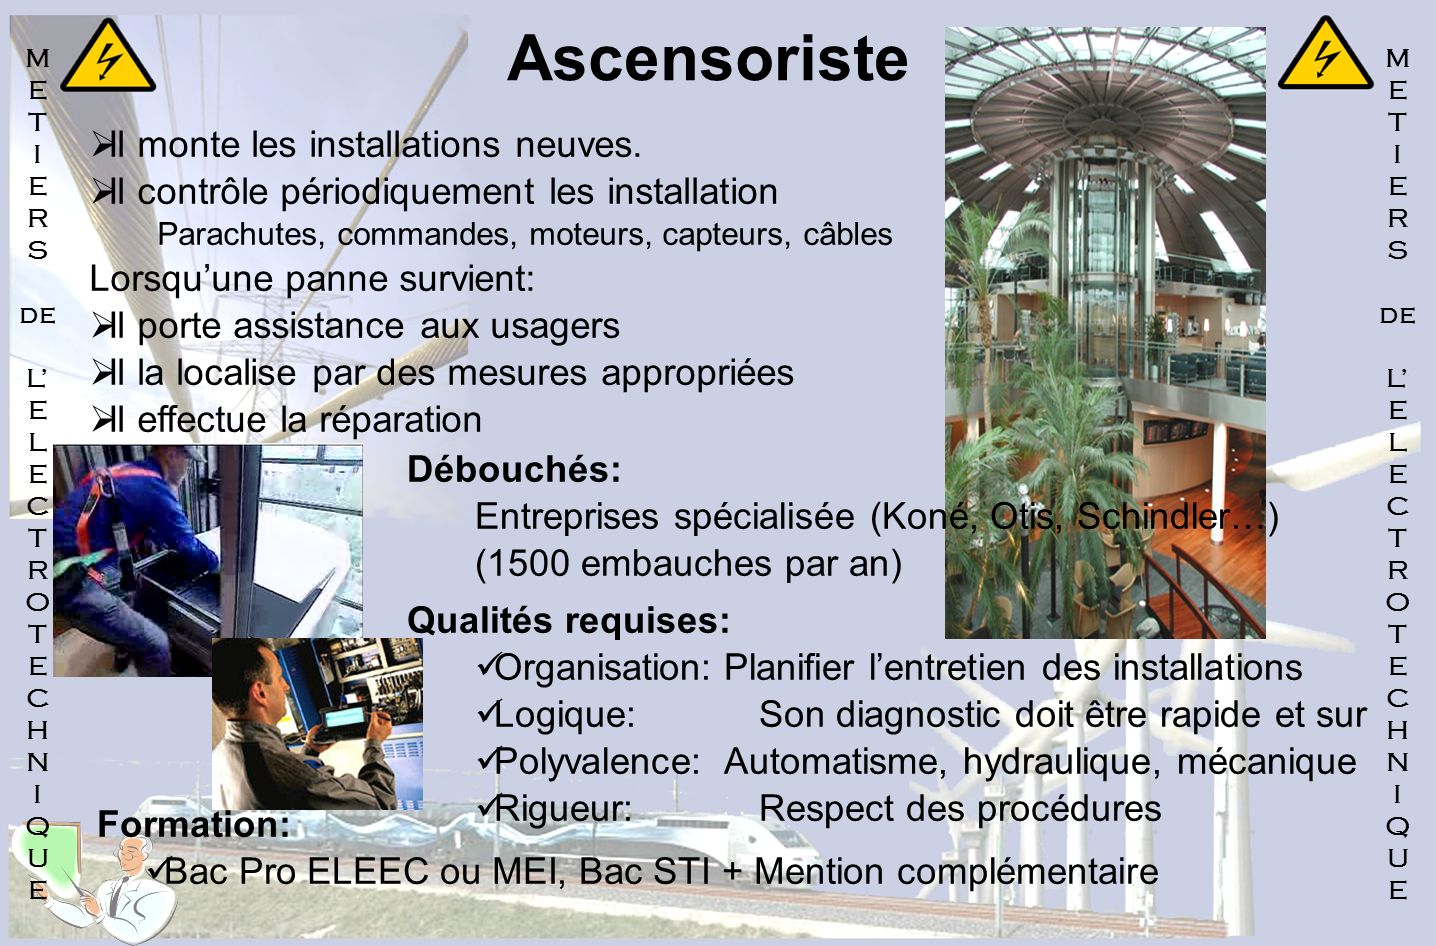 Ascensoriste Il monte les installations neuves.